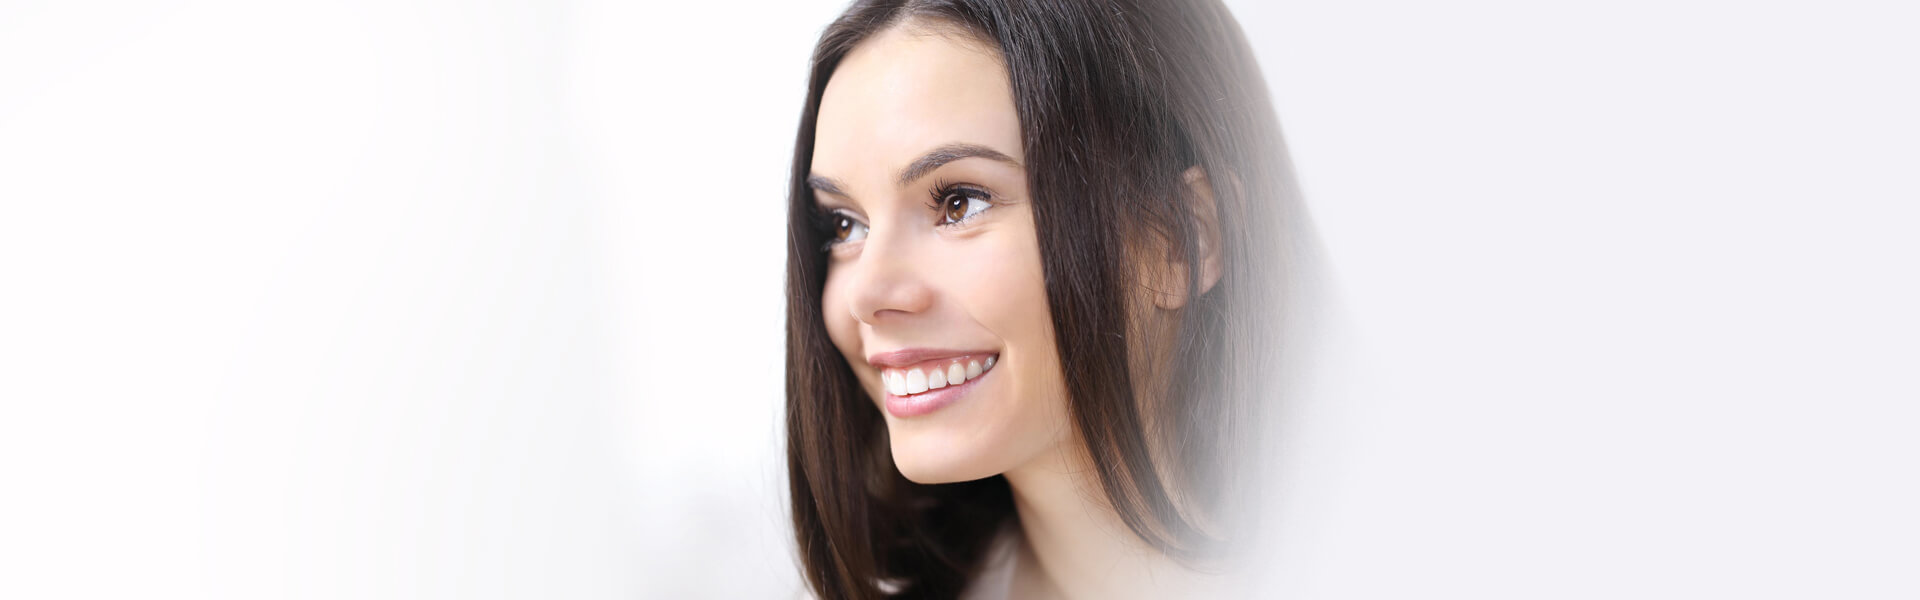 Dental Veneers in Kingman, AZ